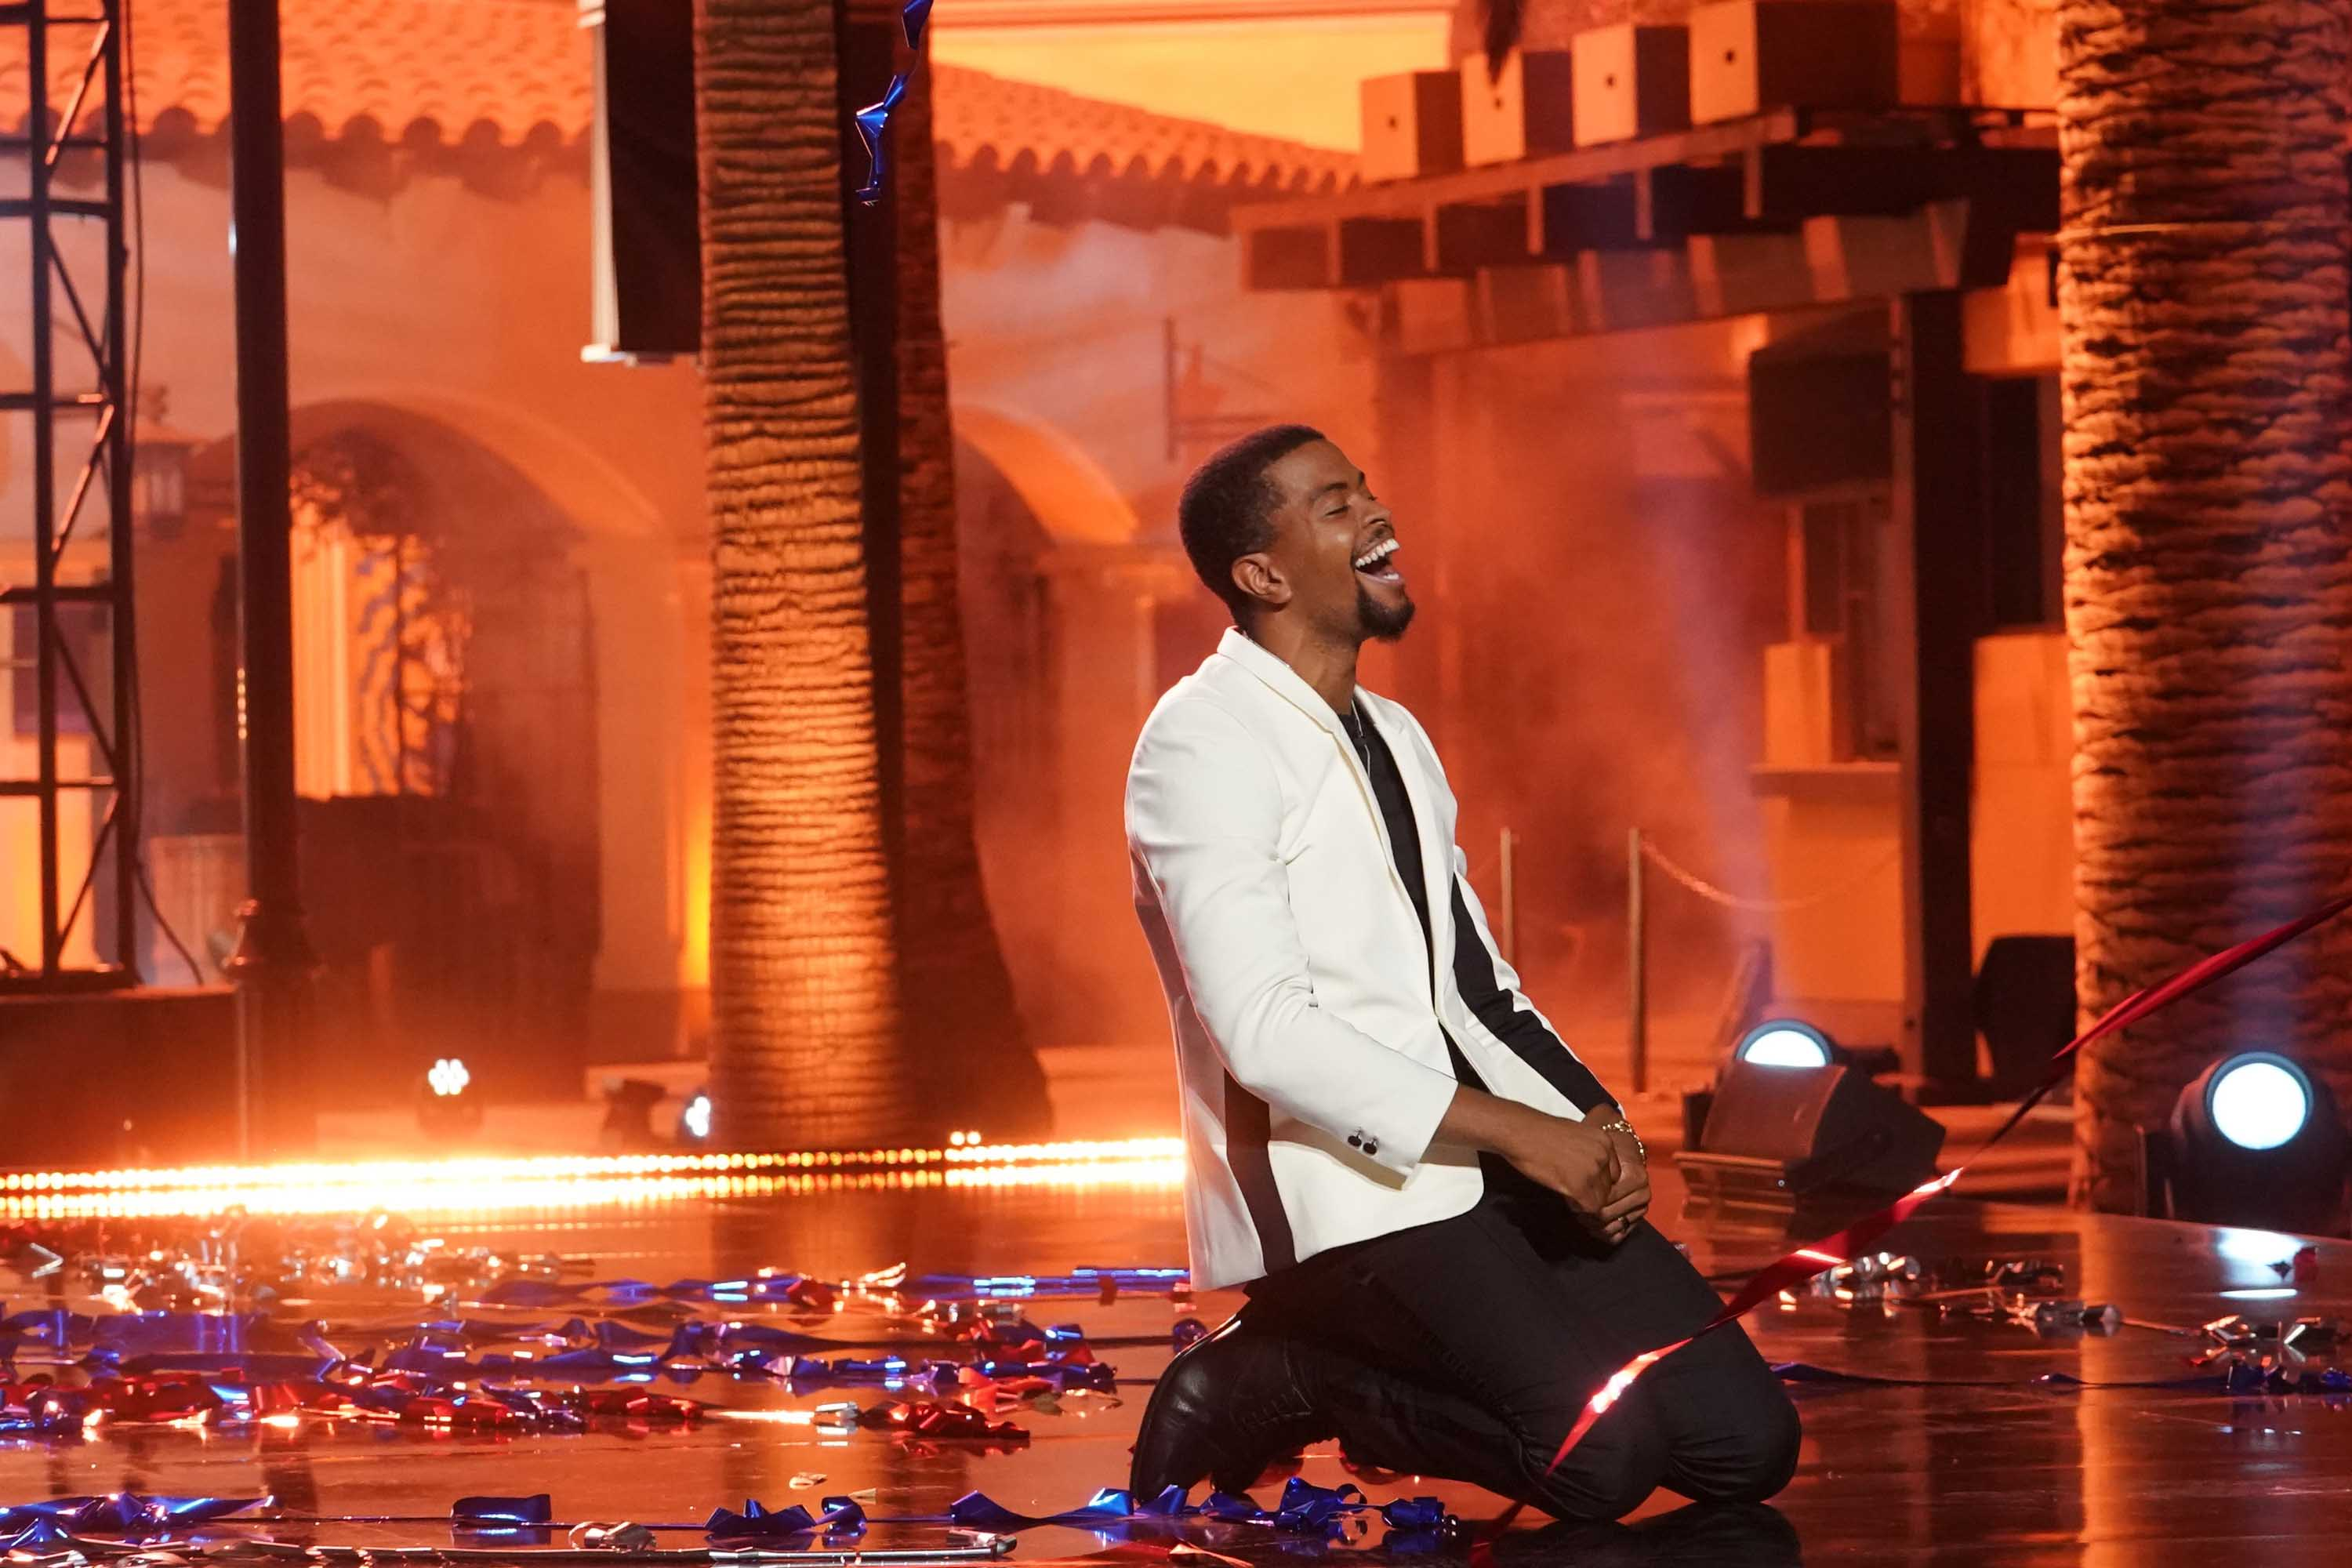 'America's Got Talent' winner is spoken word poet Brandon Leake